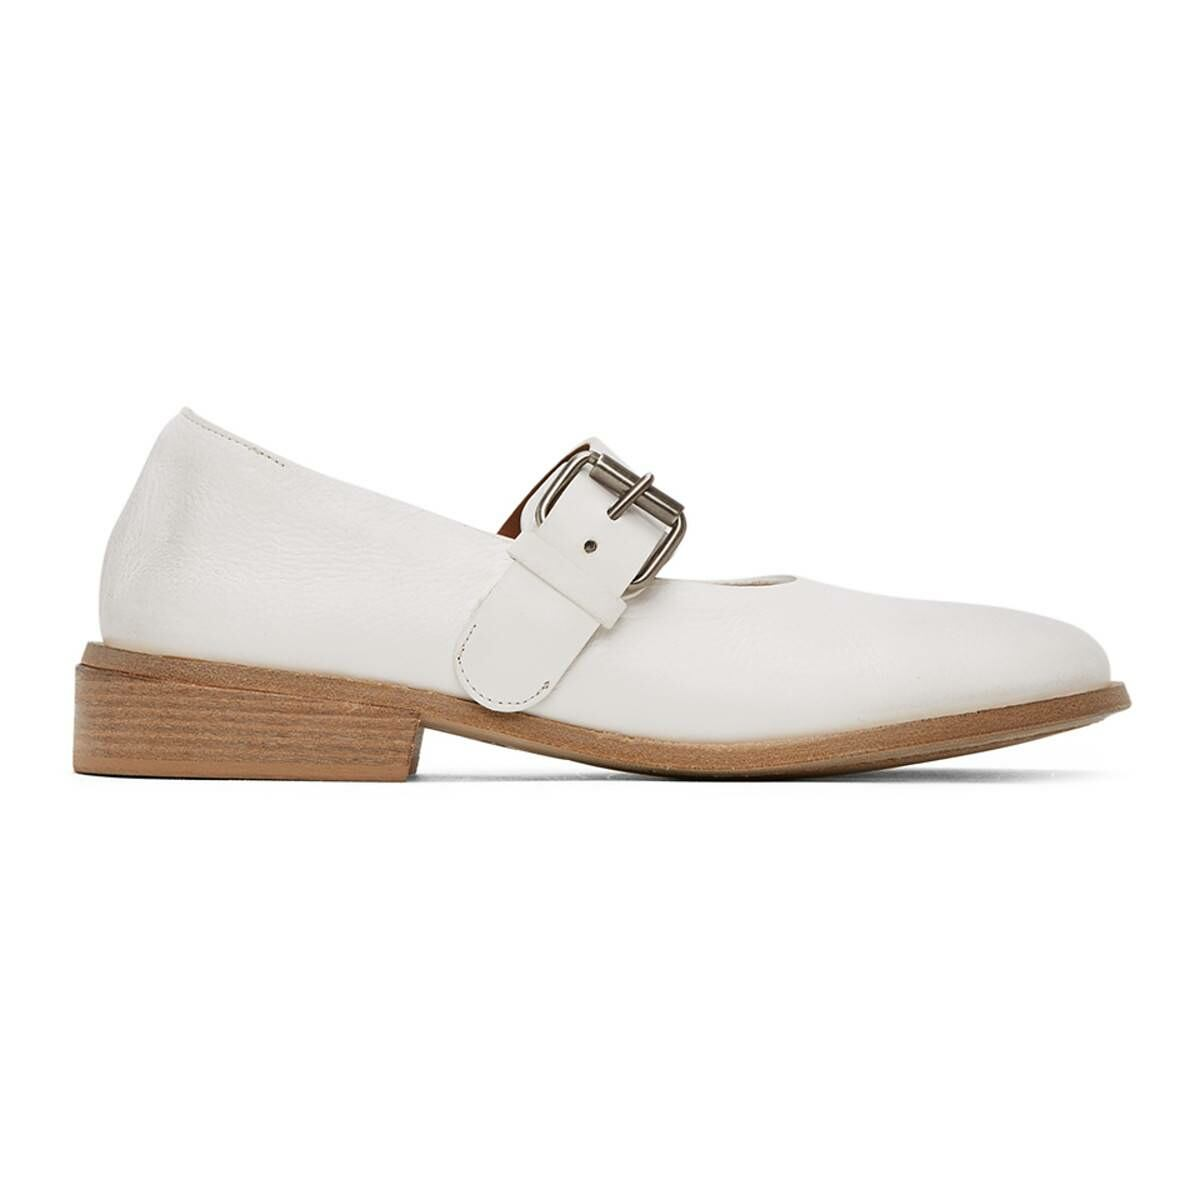 Marsell White Buckle Marcellina Shoes Ssense USA WOMEN Women SHOES Womens LEATHER SHOES